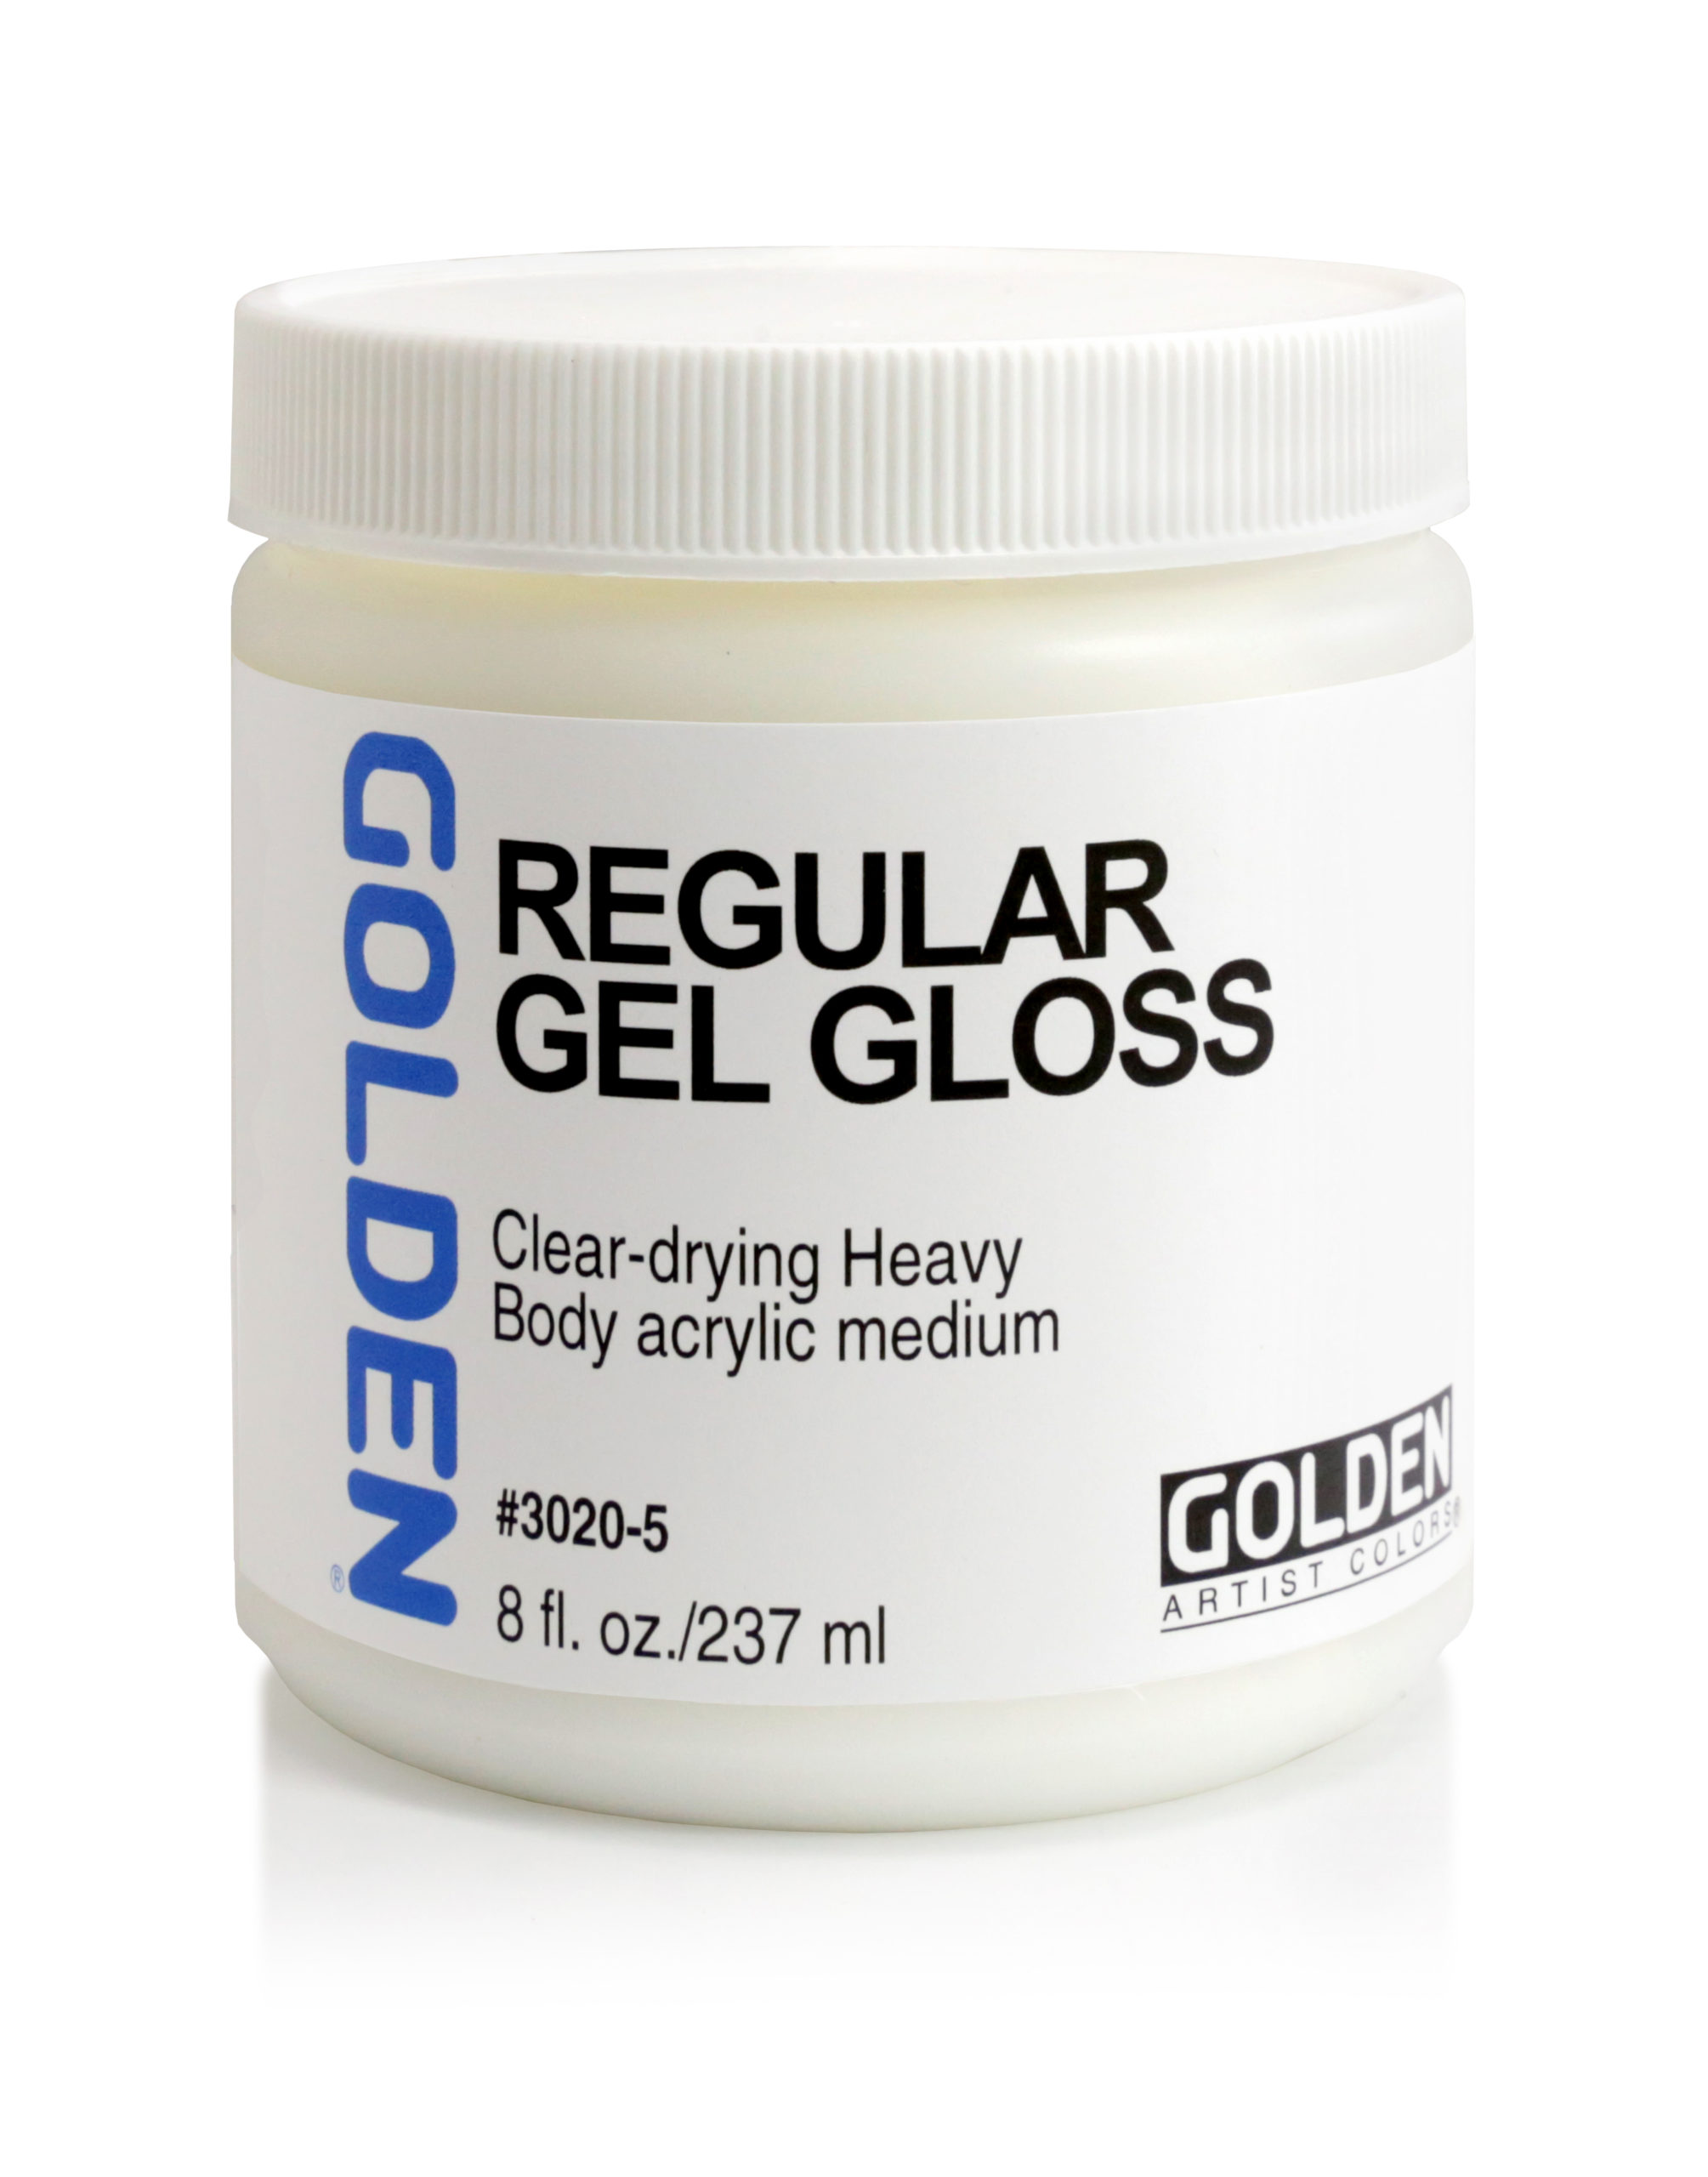 Regular Gel Gloss